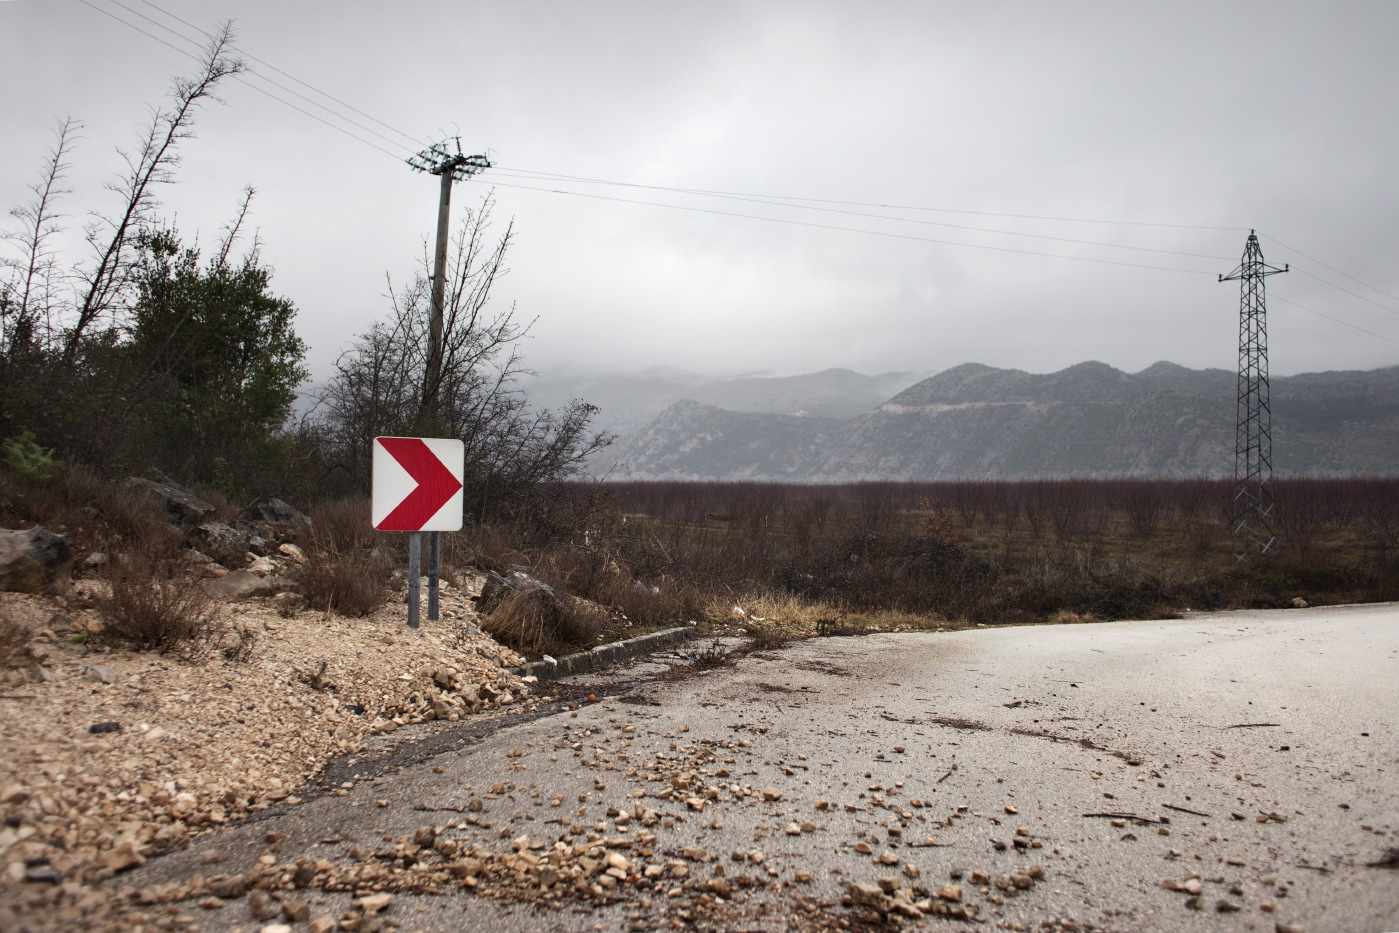 Twenty days after the overflow, the water level goes down about 4 meters. Country roads and crops reappear. Ravno, Bosnia and Herzegovina 2010. © Matteo Bastianelli